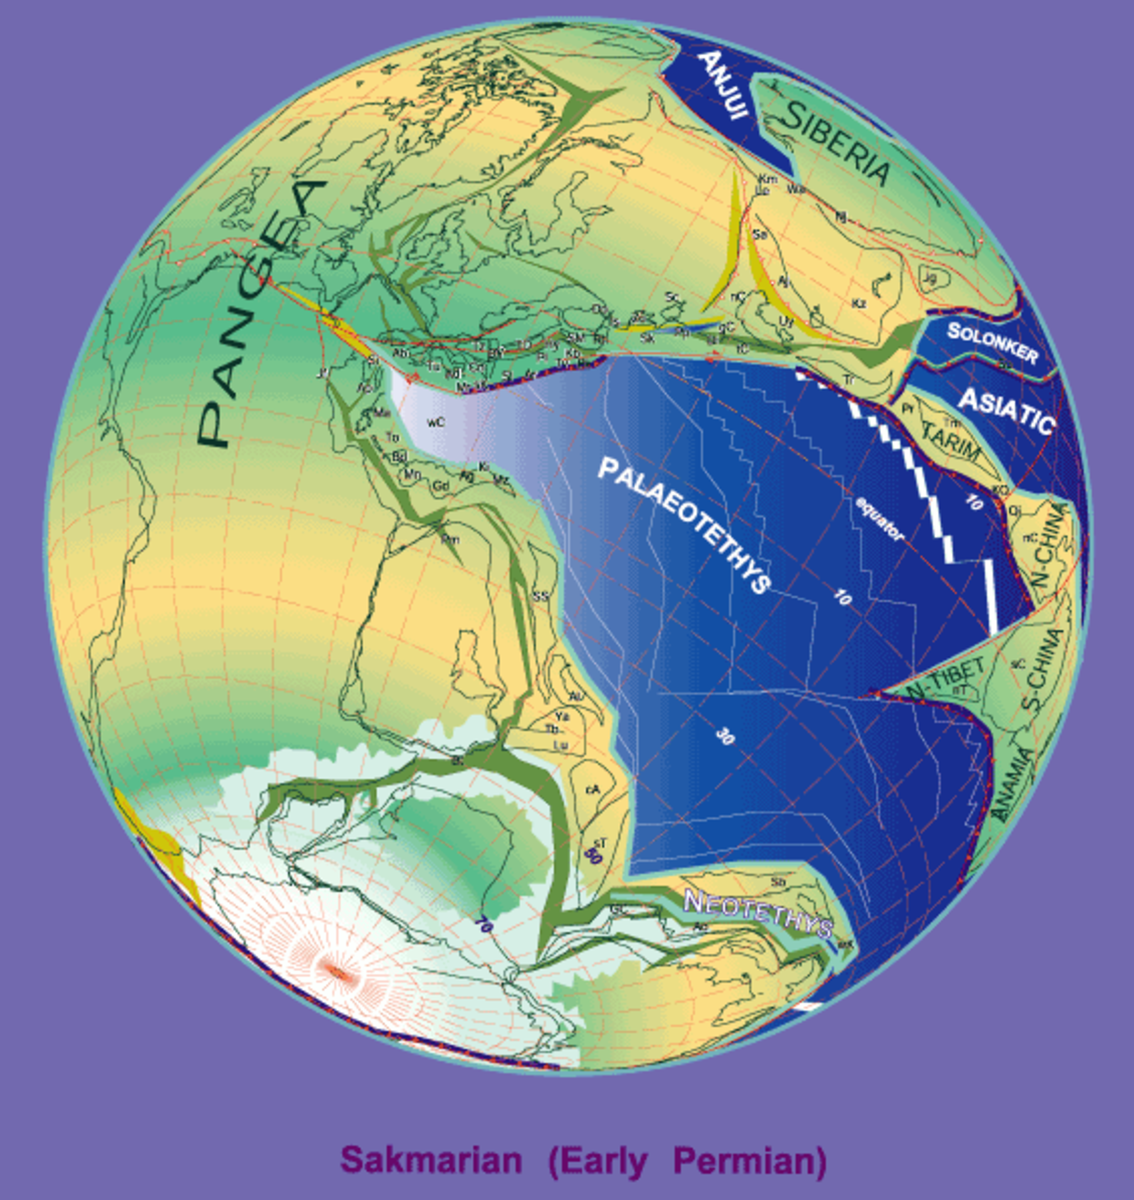 A depiction of the supercontinent Pangea which completed its formation at the start of the Permian Period.